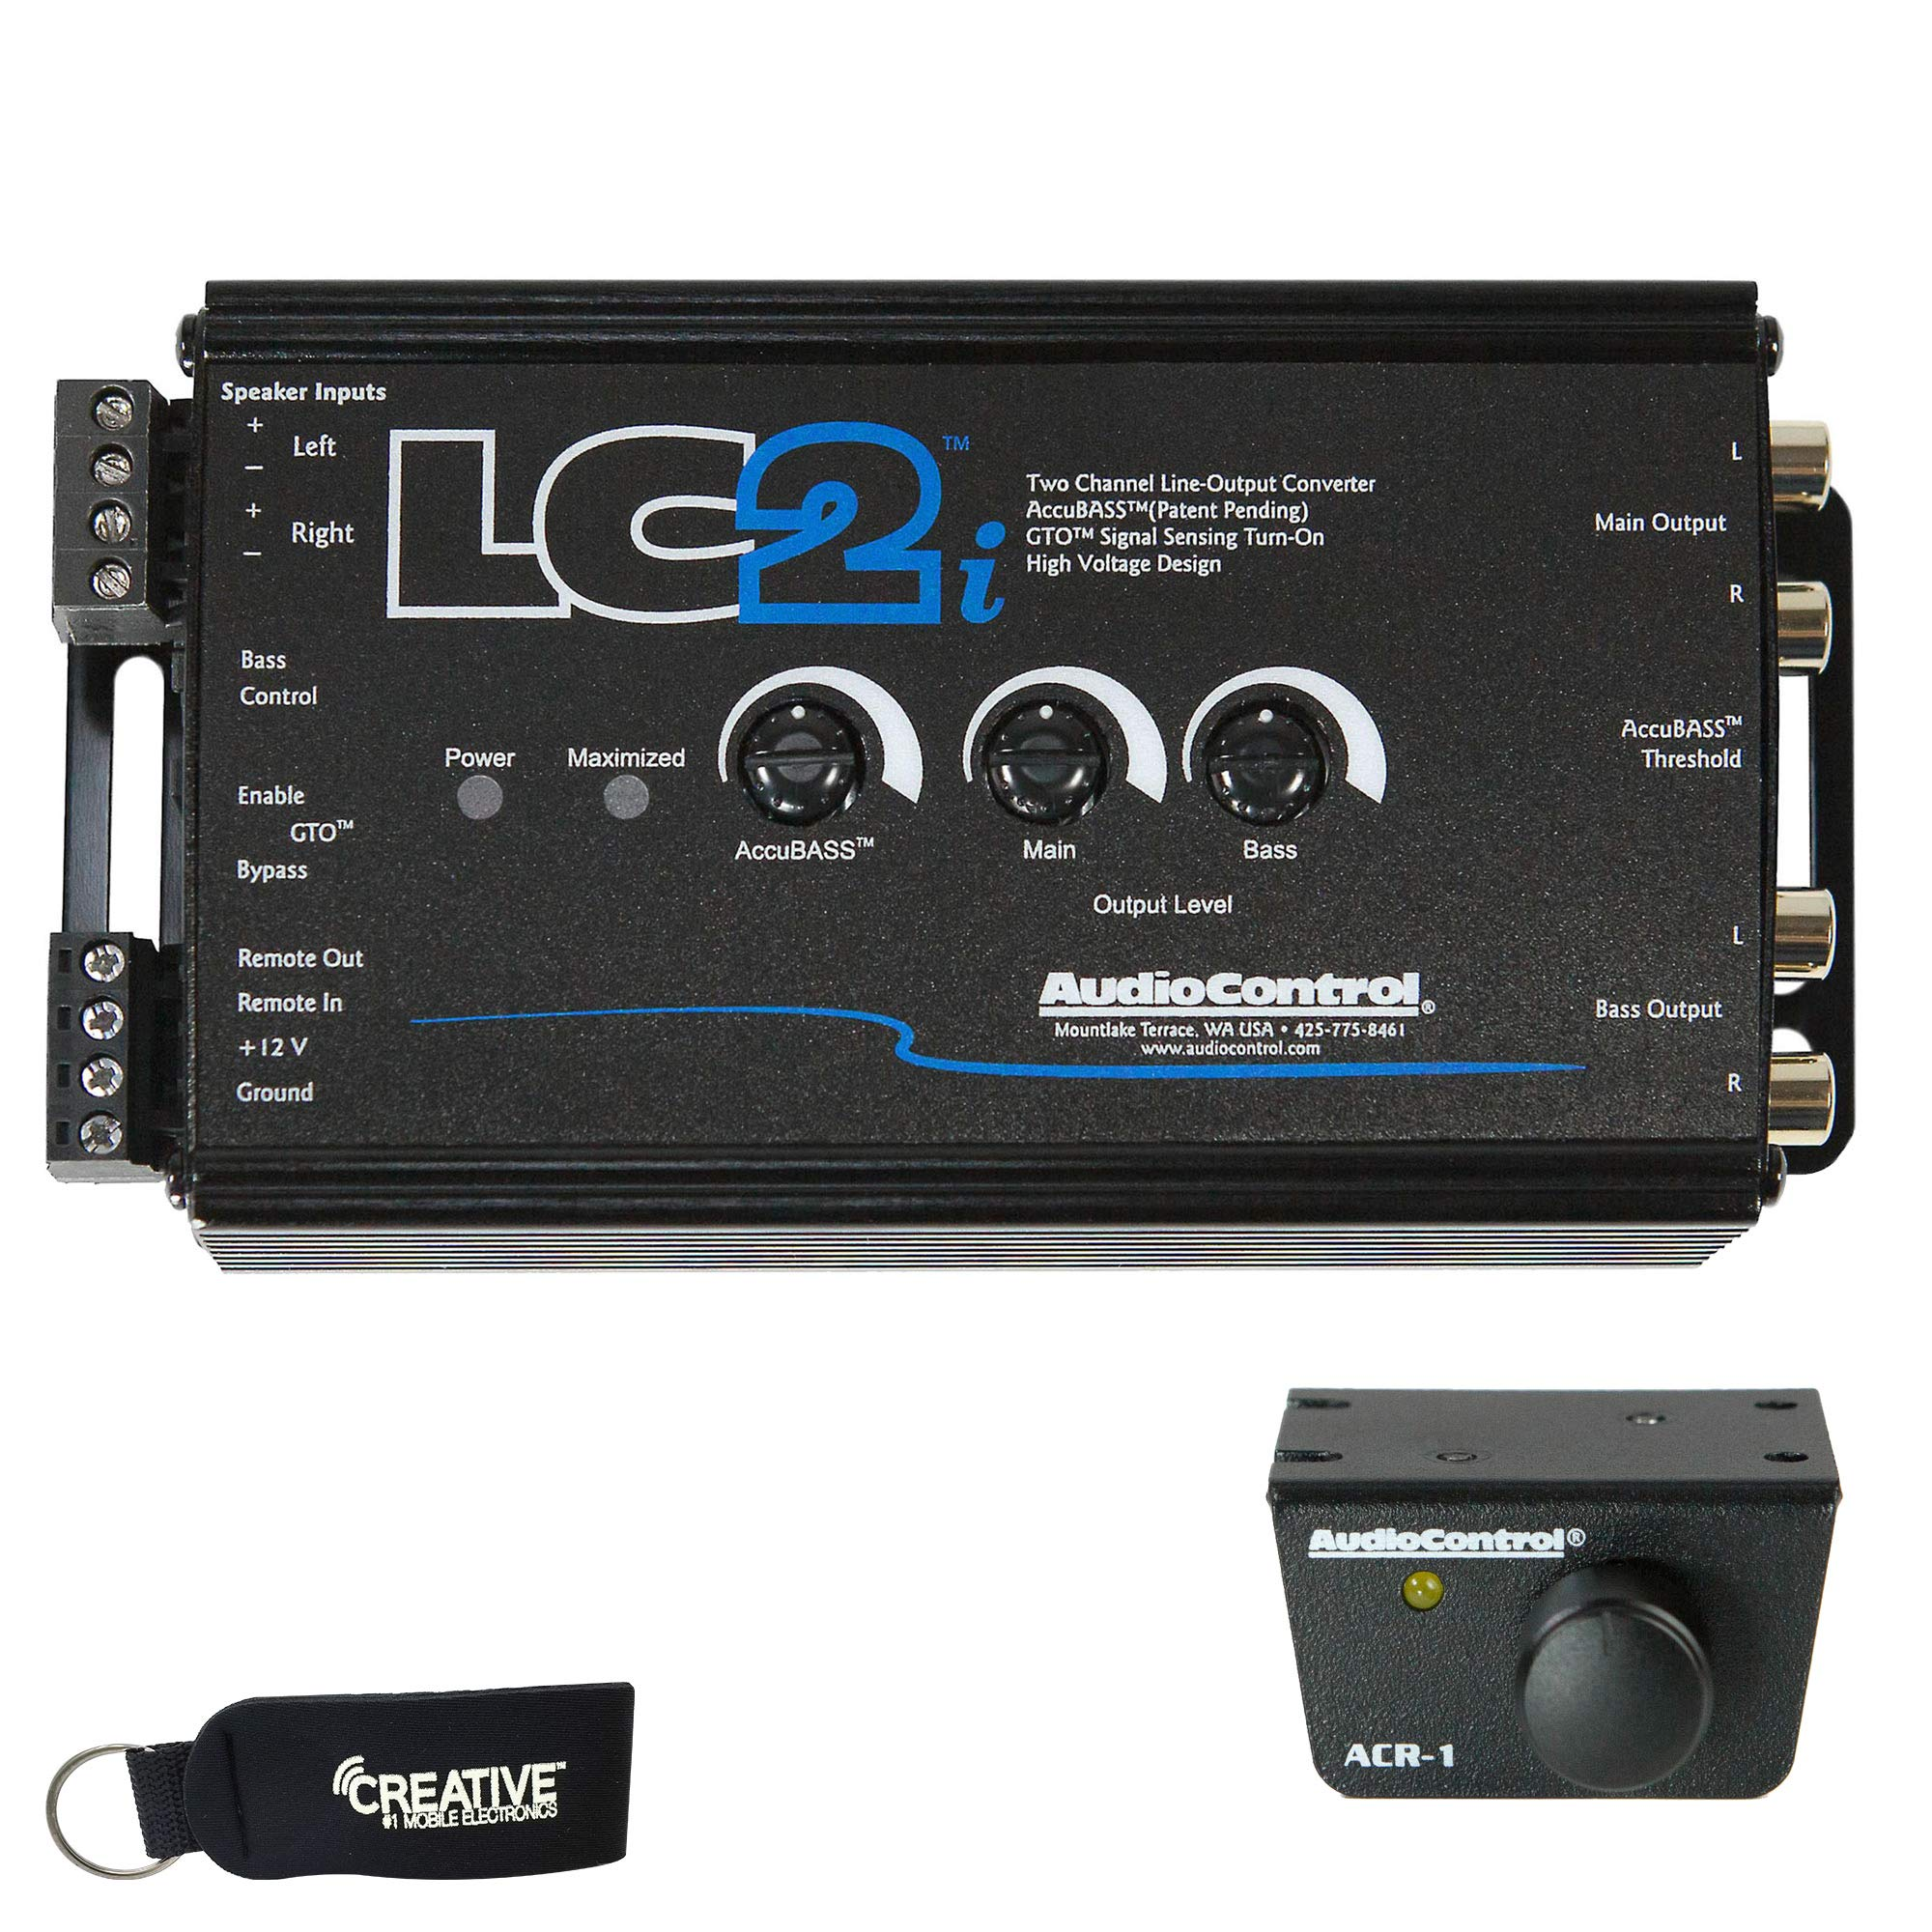 AudioControl LC2i 2 Channel Line Out Converter with Accubass and Subwoofer Control, ACR-1 Dash Remote